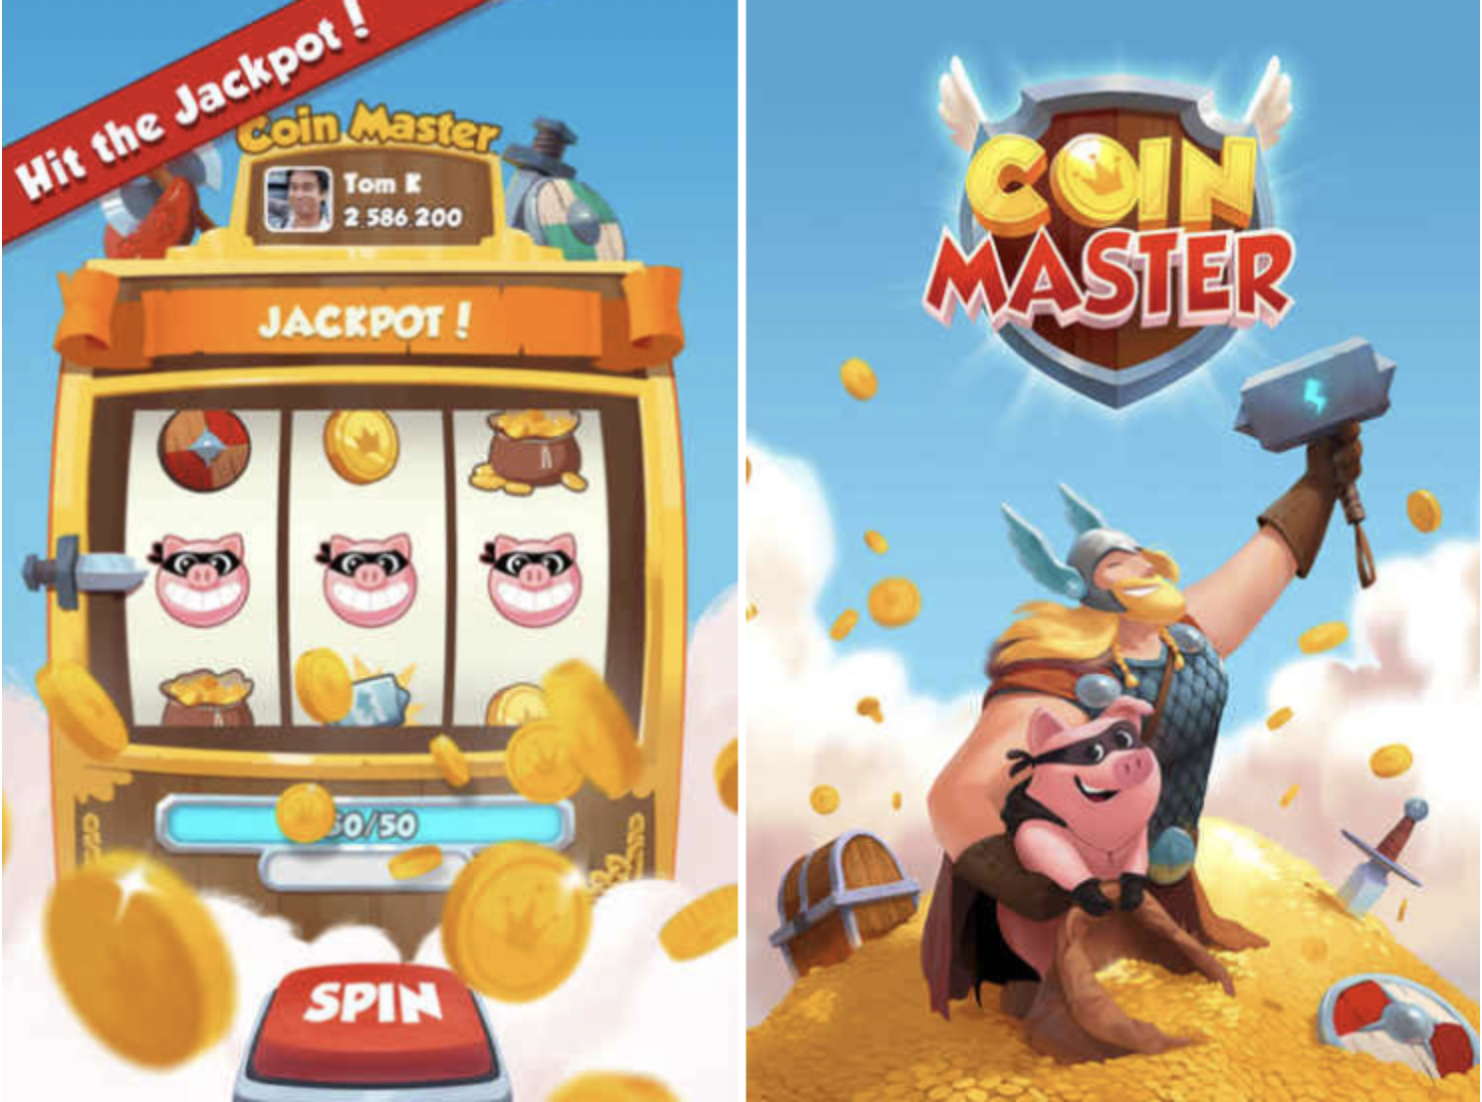 Coin Master Game Mod Hack on iOS